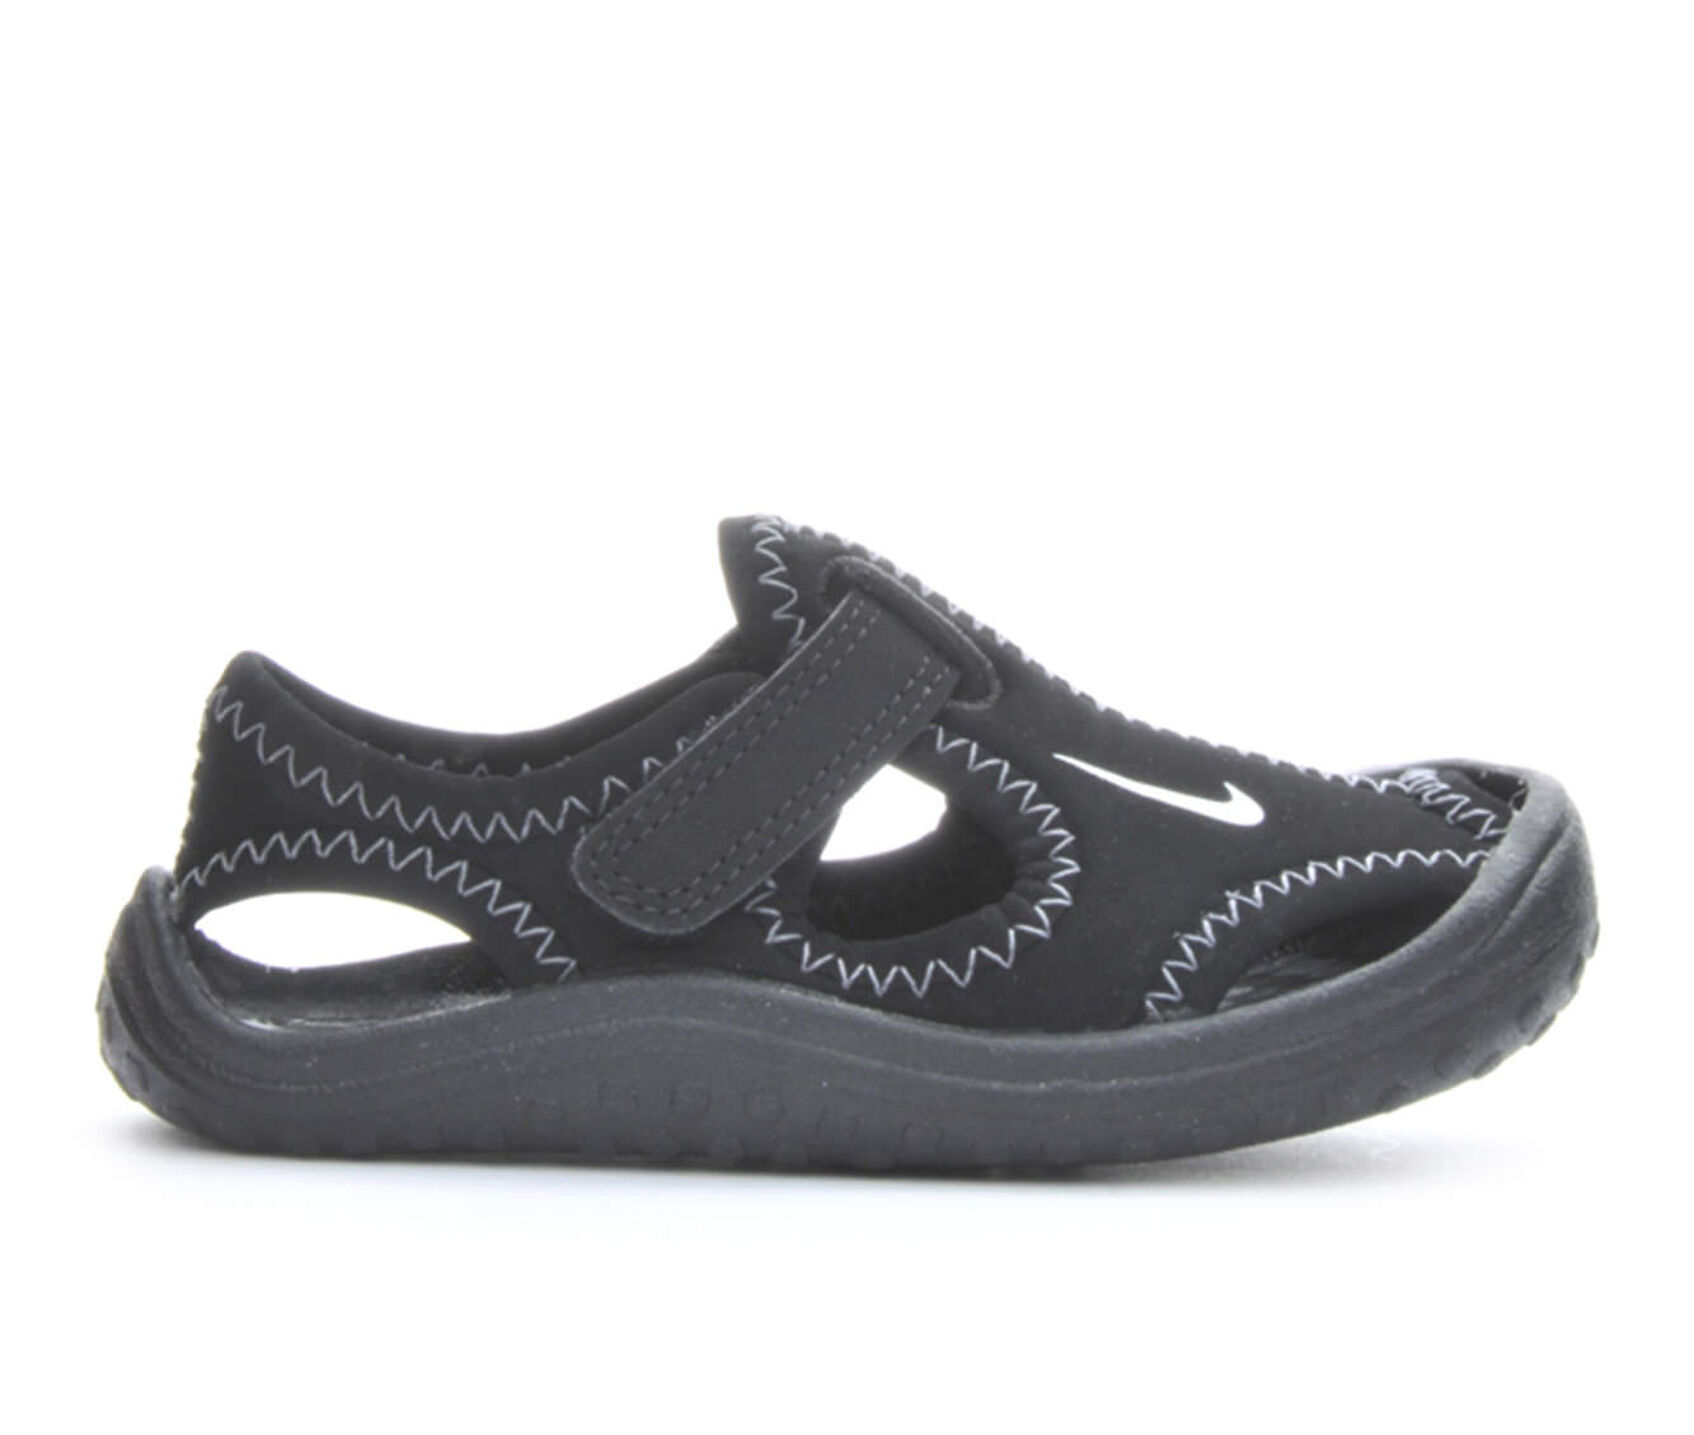 Water Shoes Toddler Size